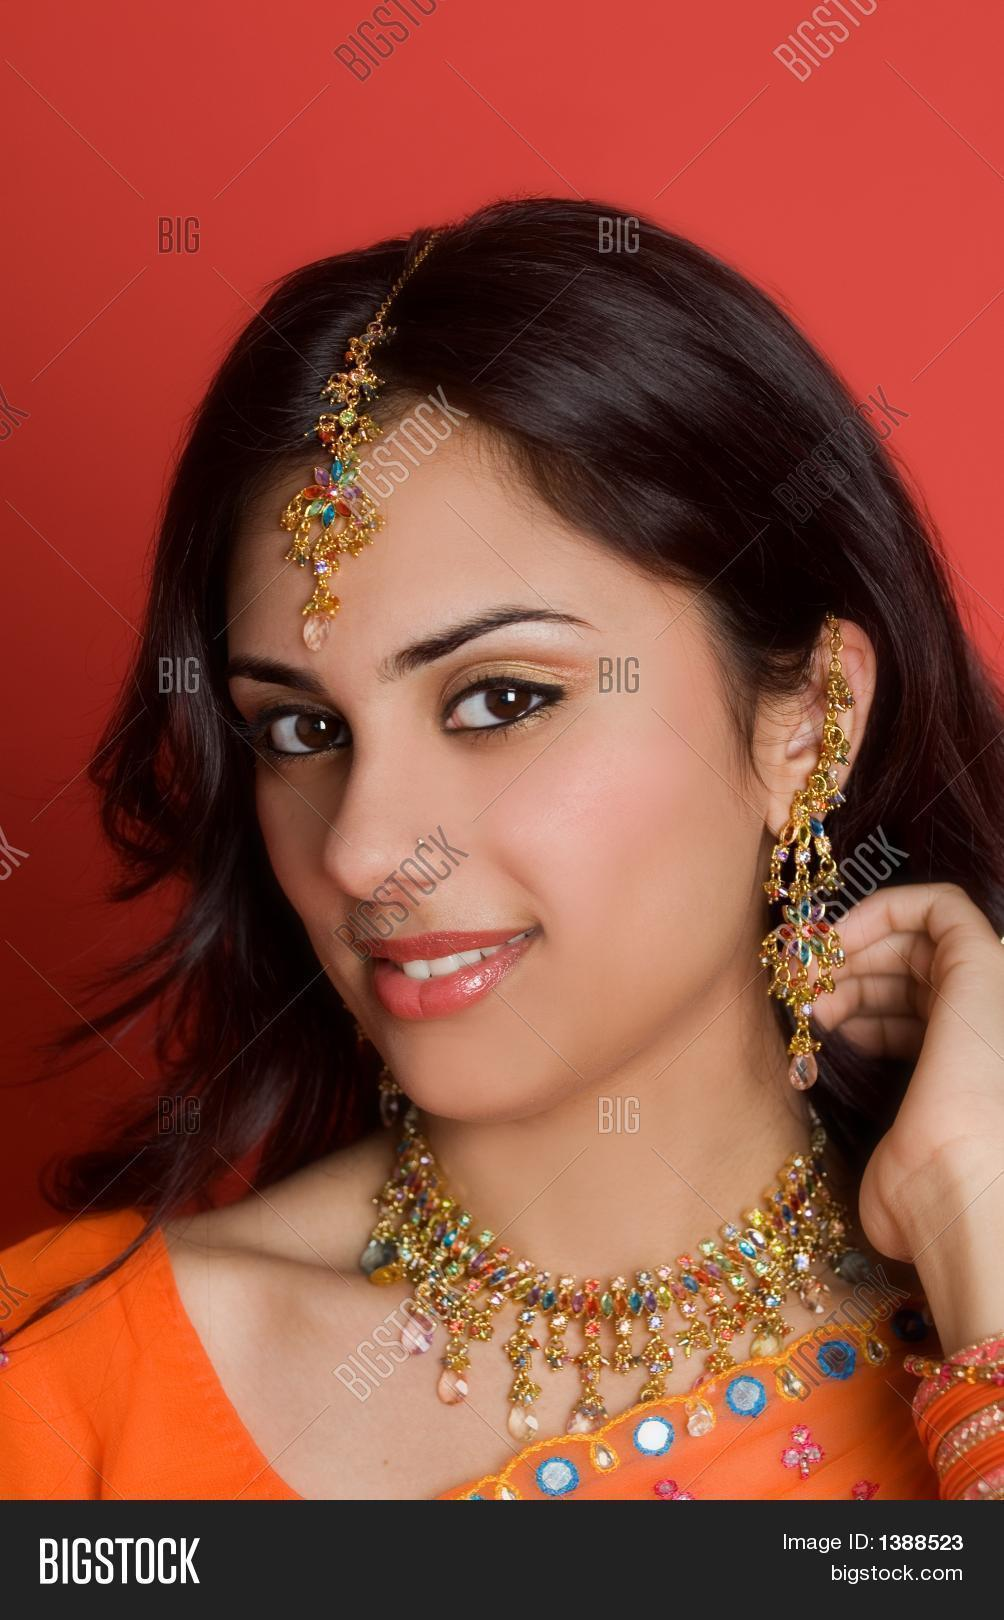 haugan hindu single women Meet single lesbian women in haugan interested in meeting new people to date on zoosk over 30 million single people are using zoosk to find people to date.